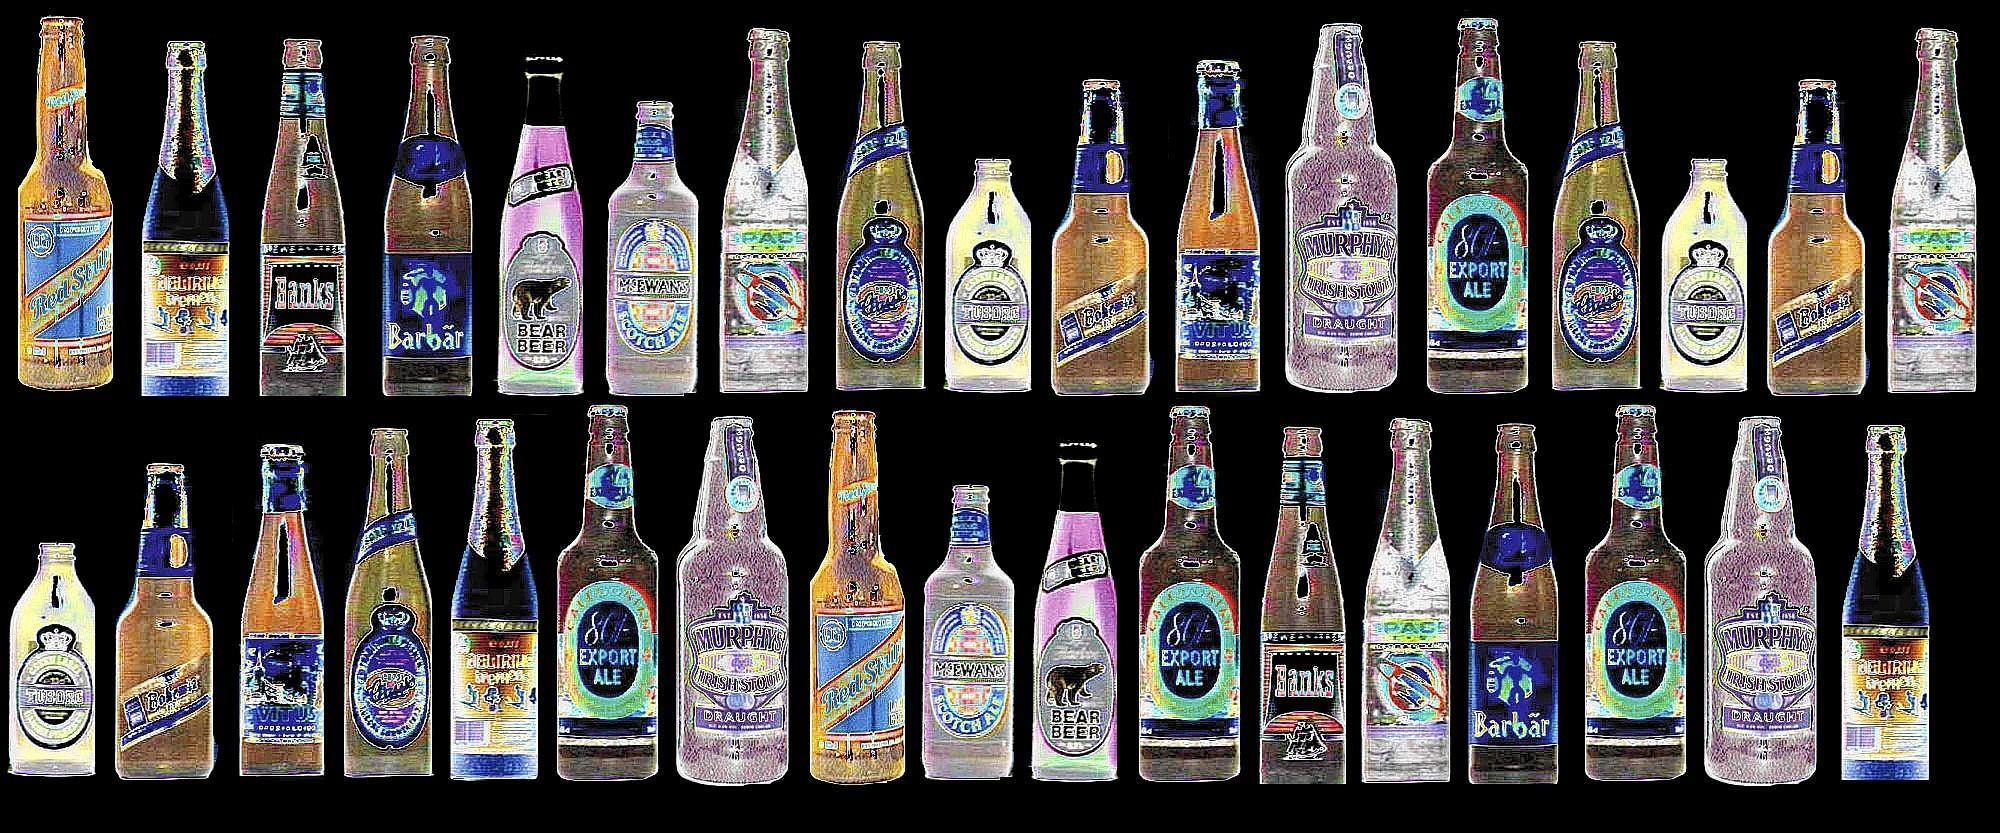 Gaylen Floy color illustration of rows of different brands of beer bottles.